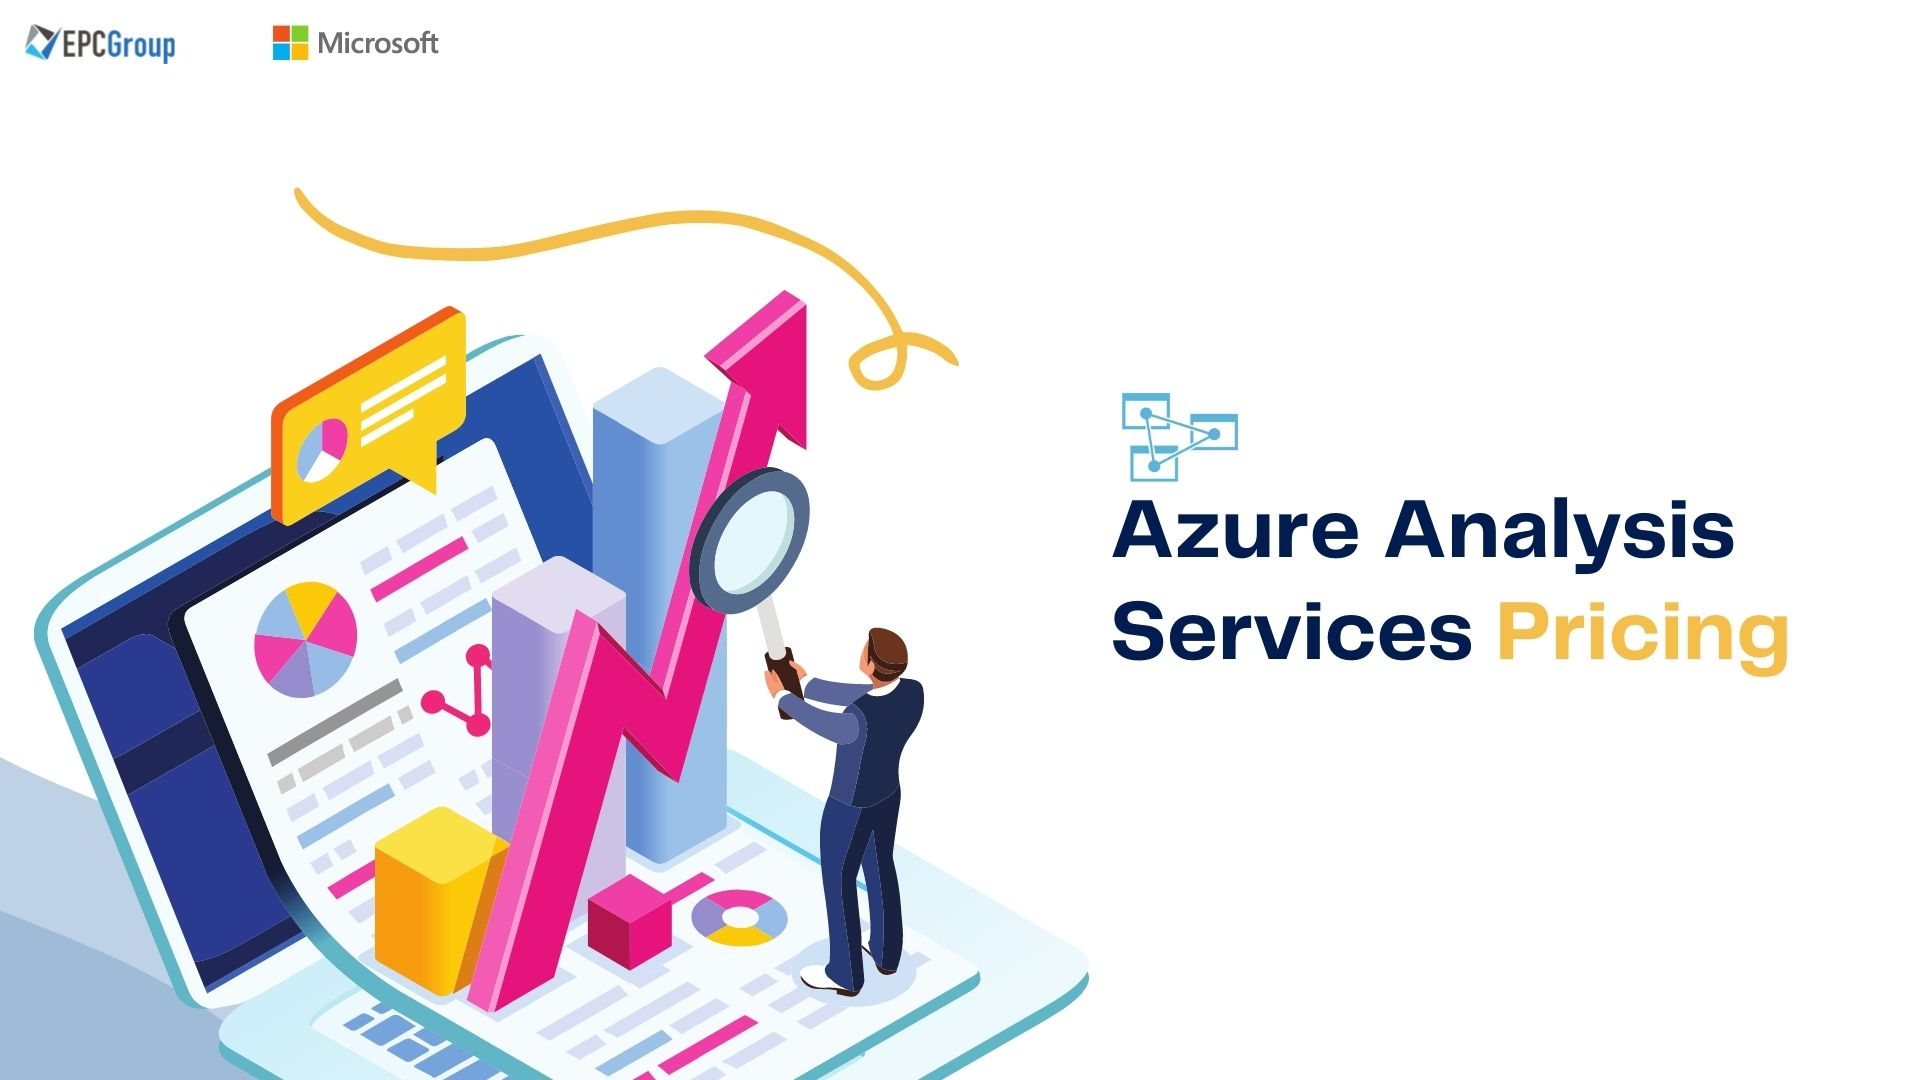 Azure Analysis Services Pricing and Features As Enterprise-grade analytics engine - thumb image